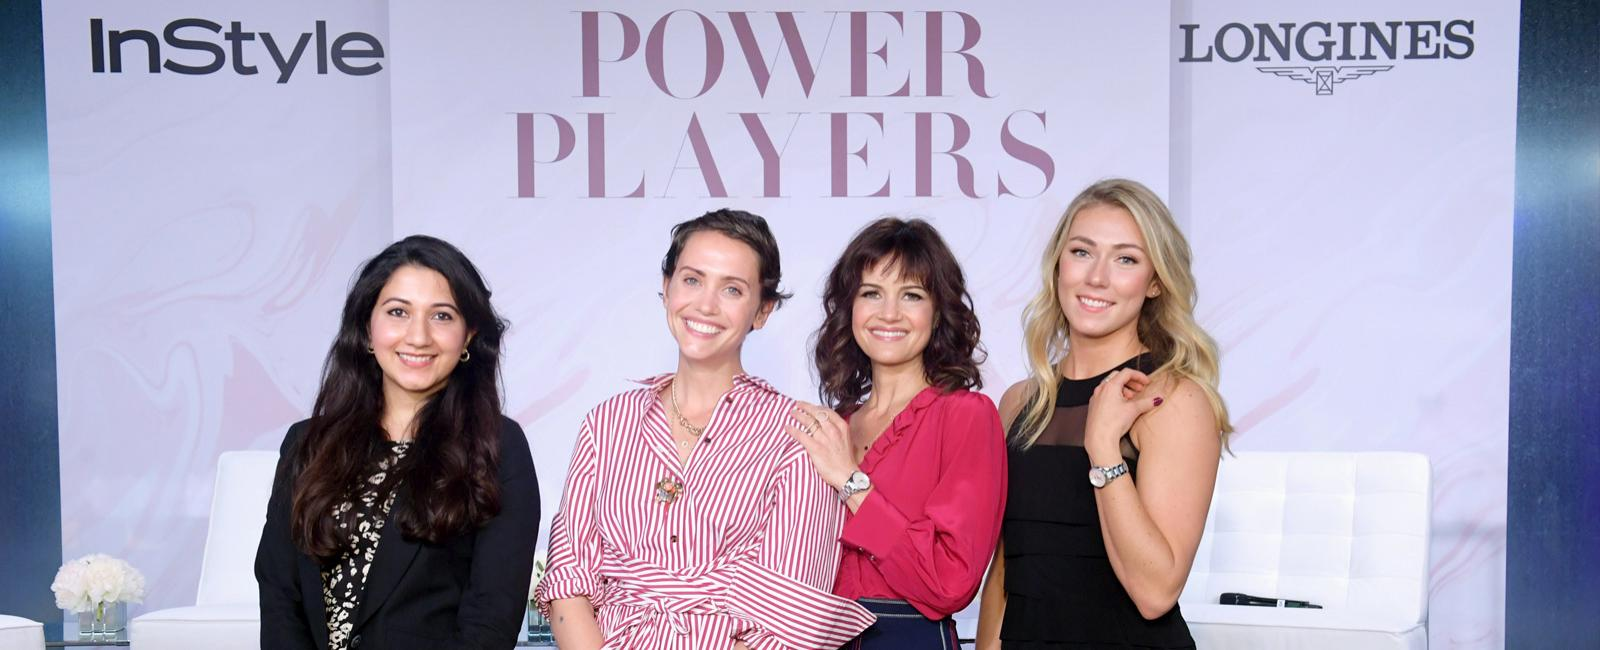 (L-R) Shyla Raghav, Laurel Pantin, Carla Gugino and Mikaela Shiffrin attend the InStyle Talks: Power Players presented by Longines & launch of Longines' Conquest Classic Collection on June 05, 2019 in New York City.